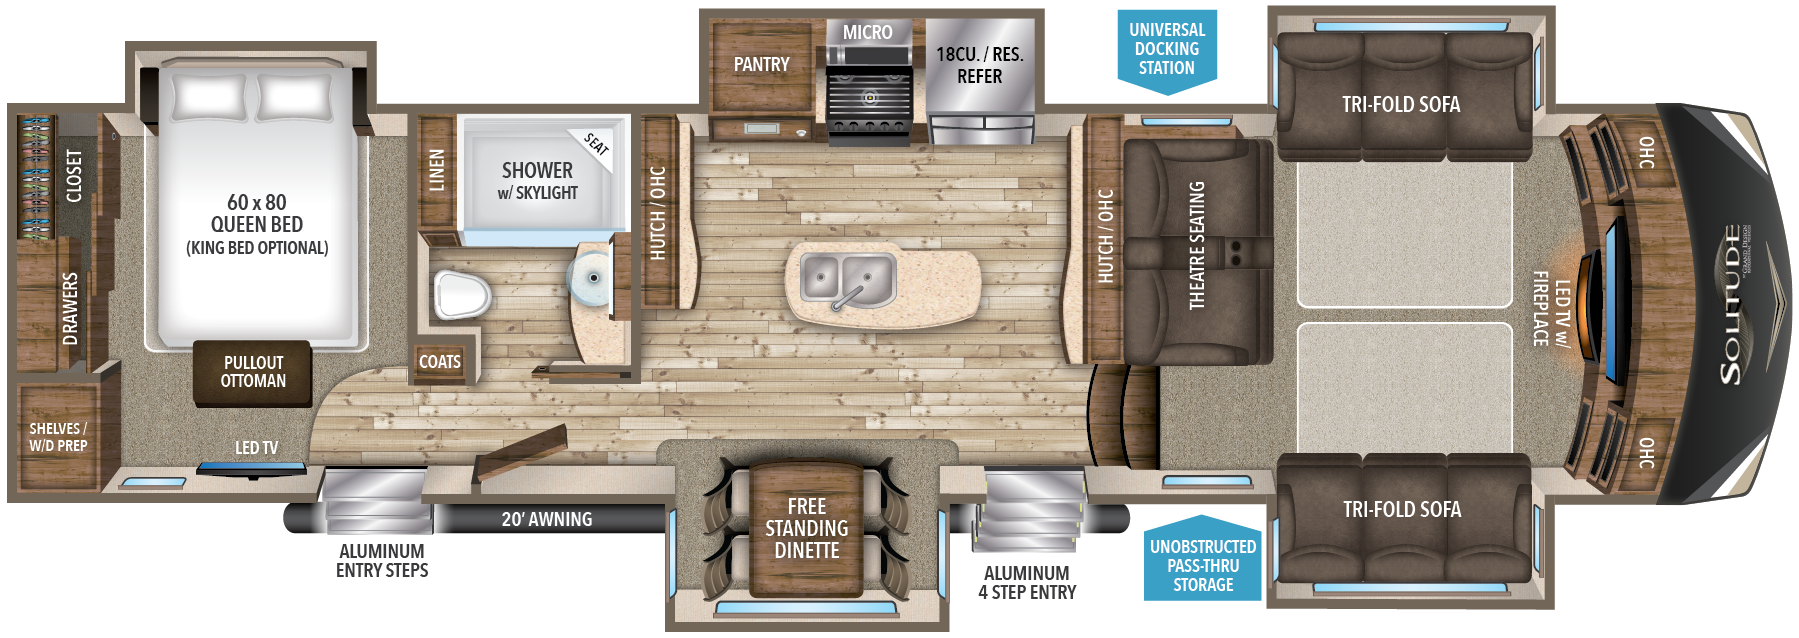 Cool floor plan project rv life pinterest rv rv living and camping